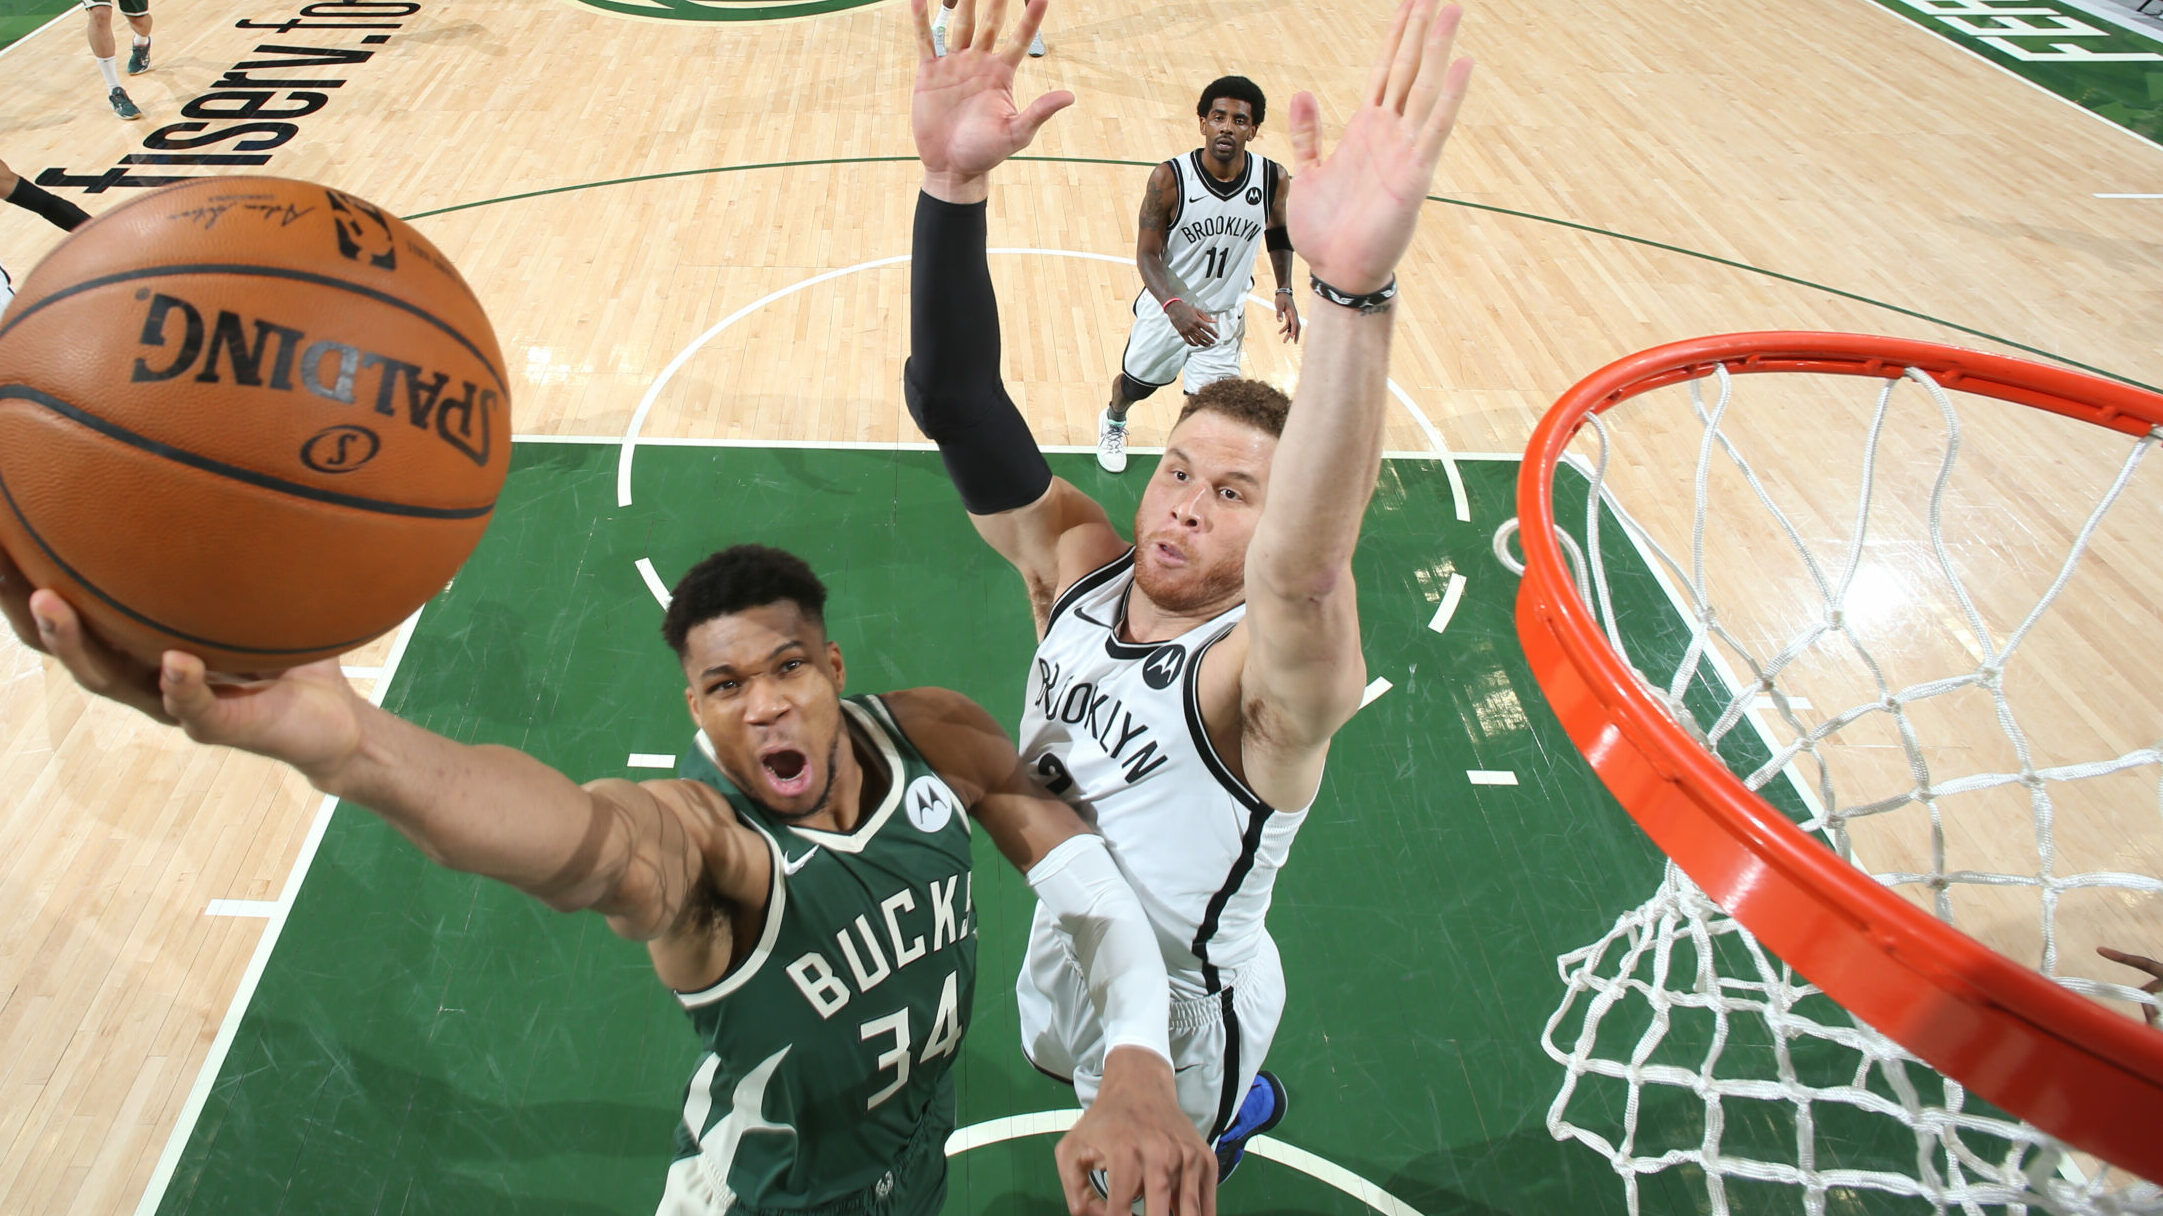 Bucks edge Nets for crucial victory in Milwaukee, cut series deficit to 2-1